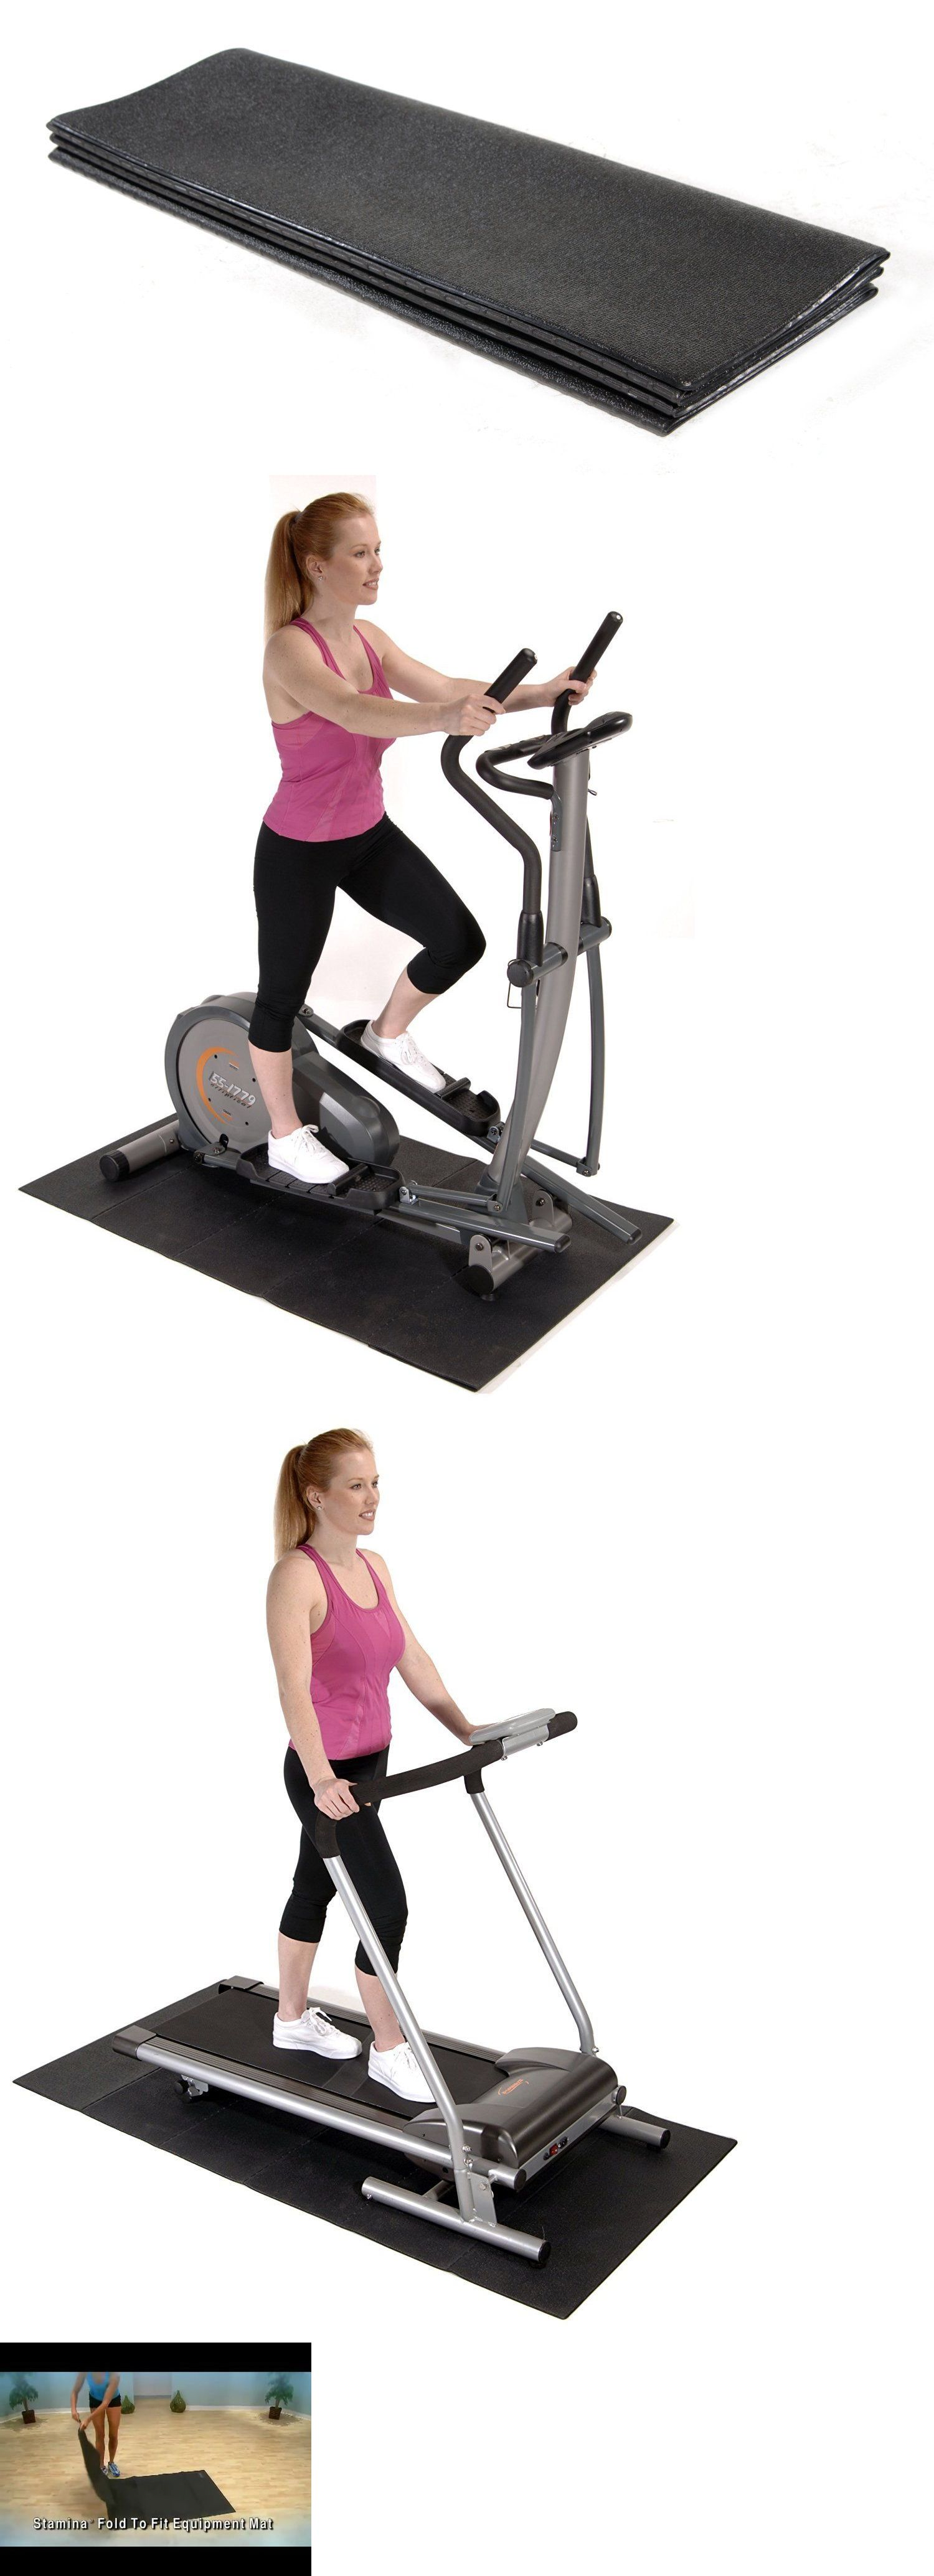 drive full mats proform elliptical resource itm screen ifit coach pro color mat front with